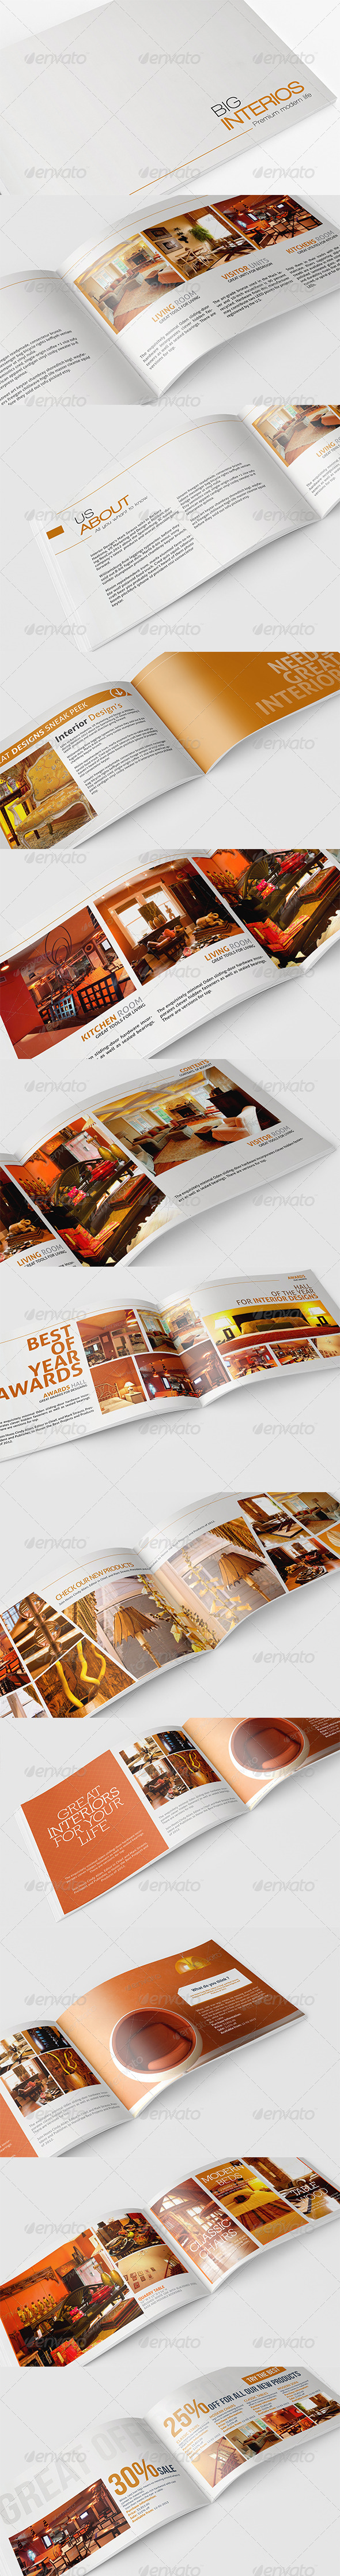 GraphicRiver A5 Booklet Catalogue Brochure 4281158